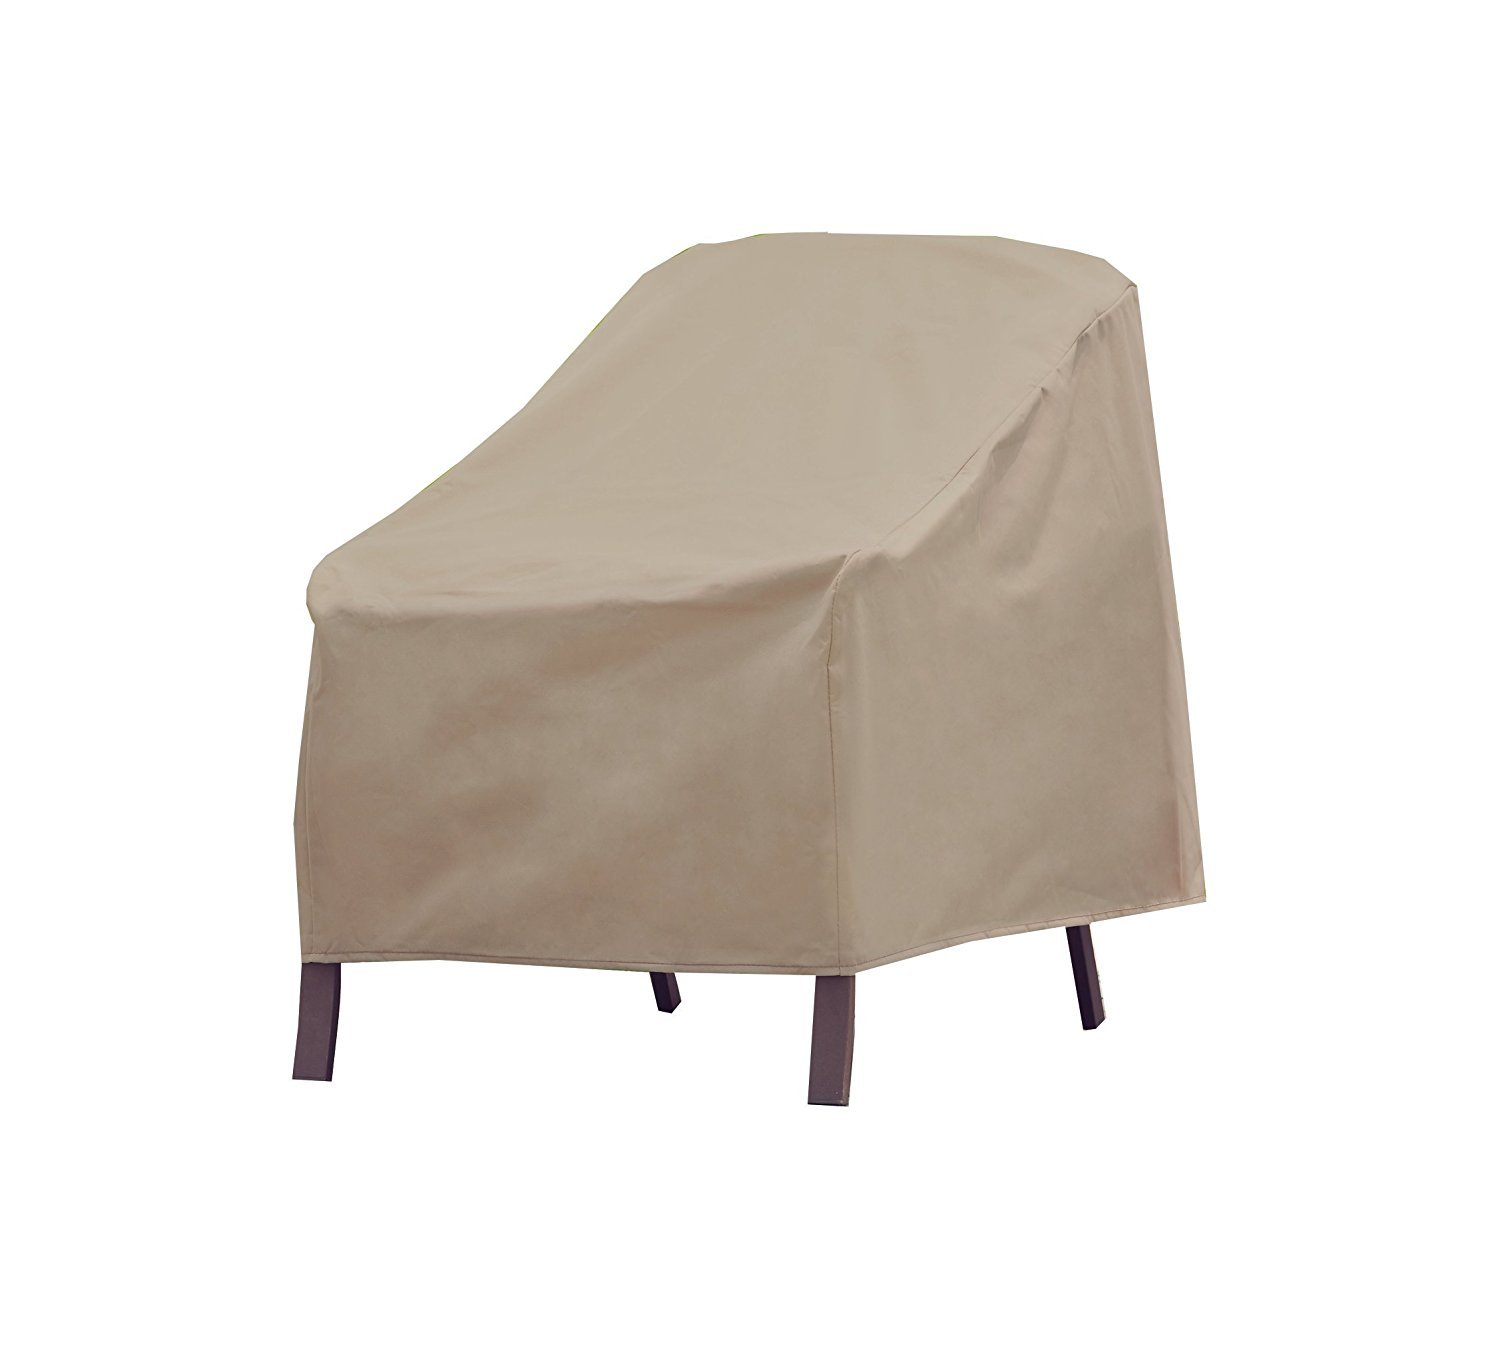 Allen Patio Protectors Patio Furniture Chair Cover, Weather & waterproof patio chair cover (Pack of 2) by Allen Patio Protectors (Image #2)